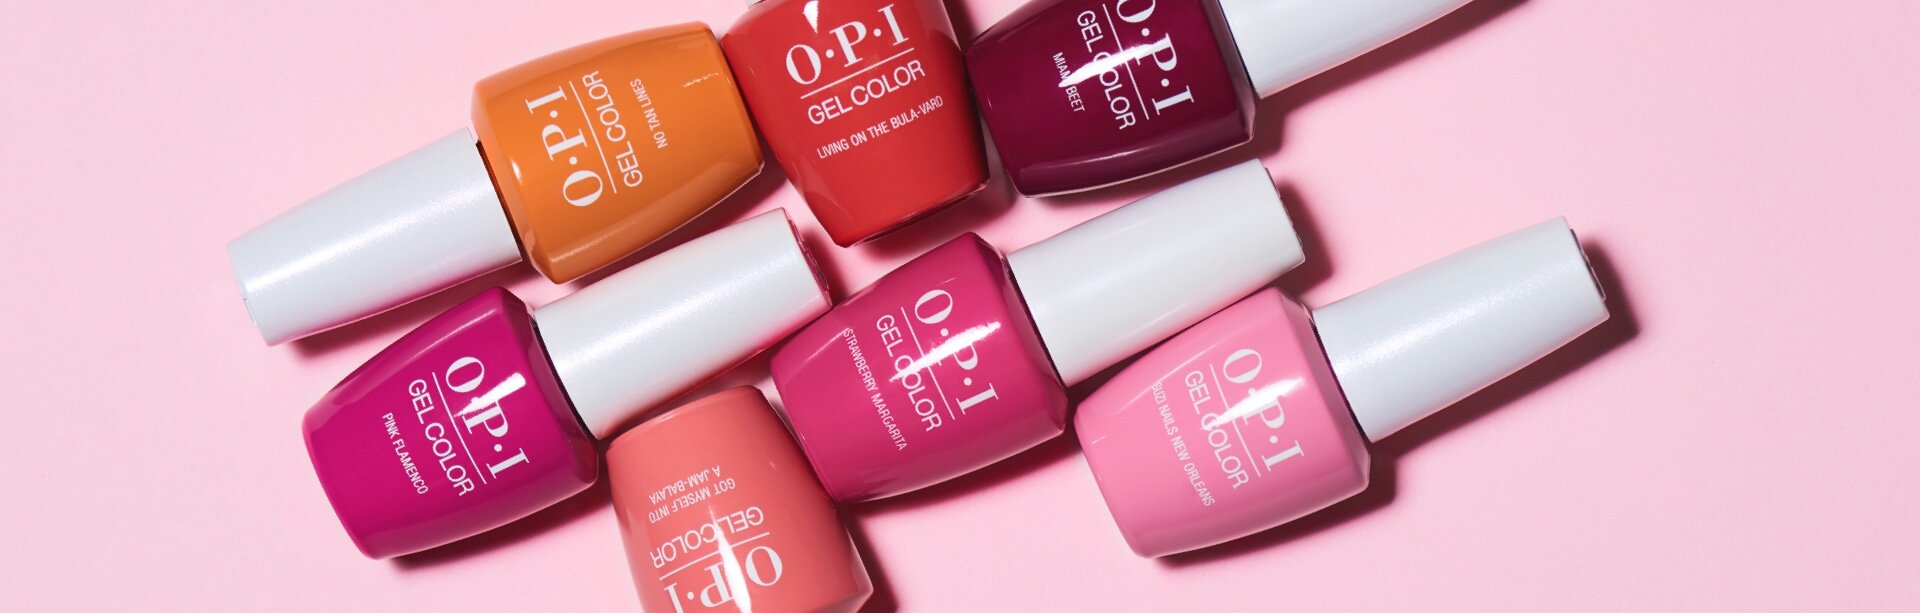 Browse the shades available in OPI GelColor